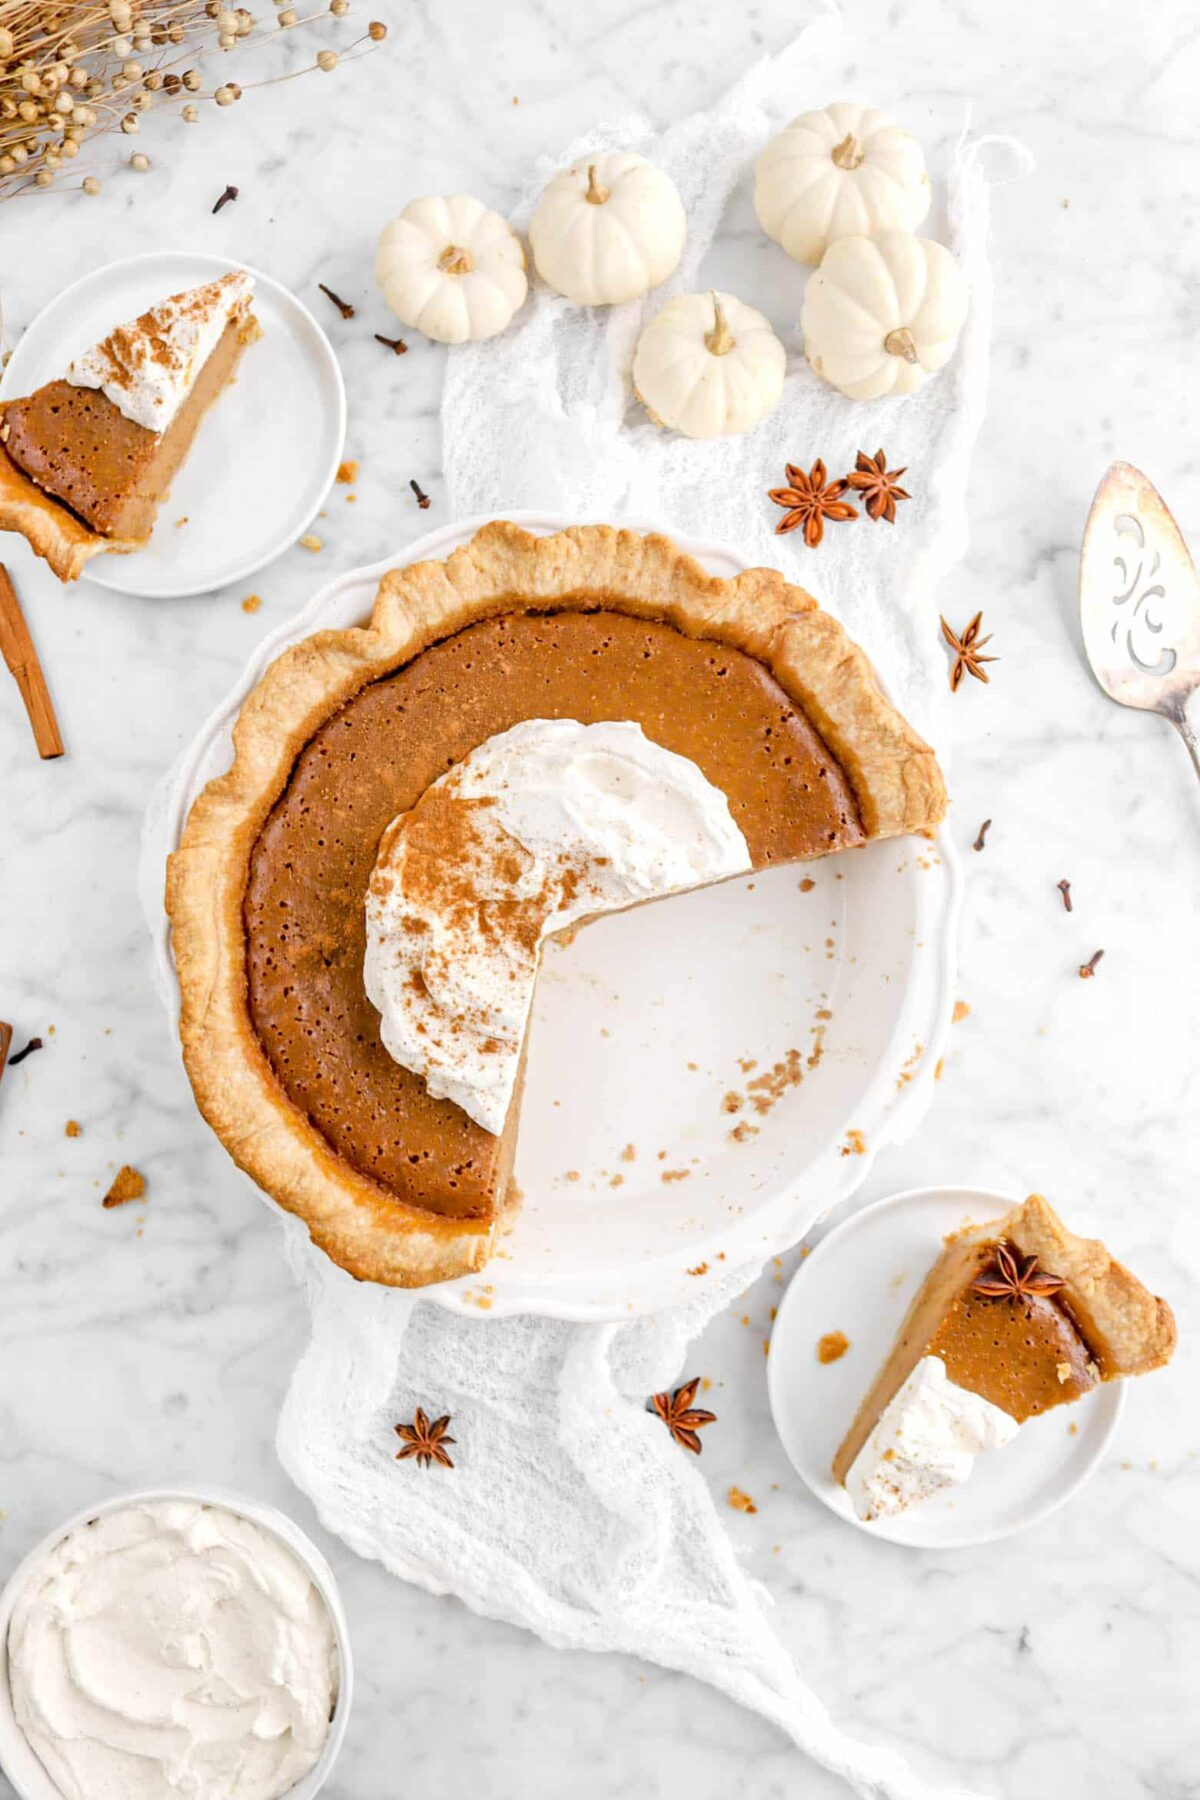 overhead shot of pumpkin pie with two slices on white plates, whole slices, and mini pumpkins